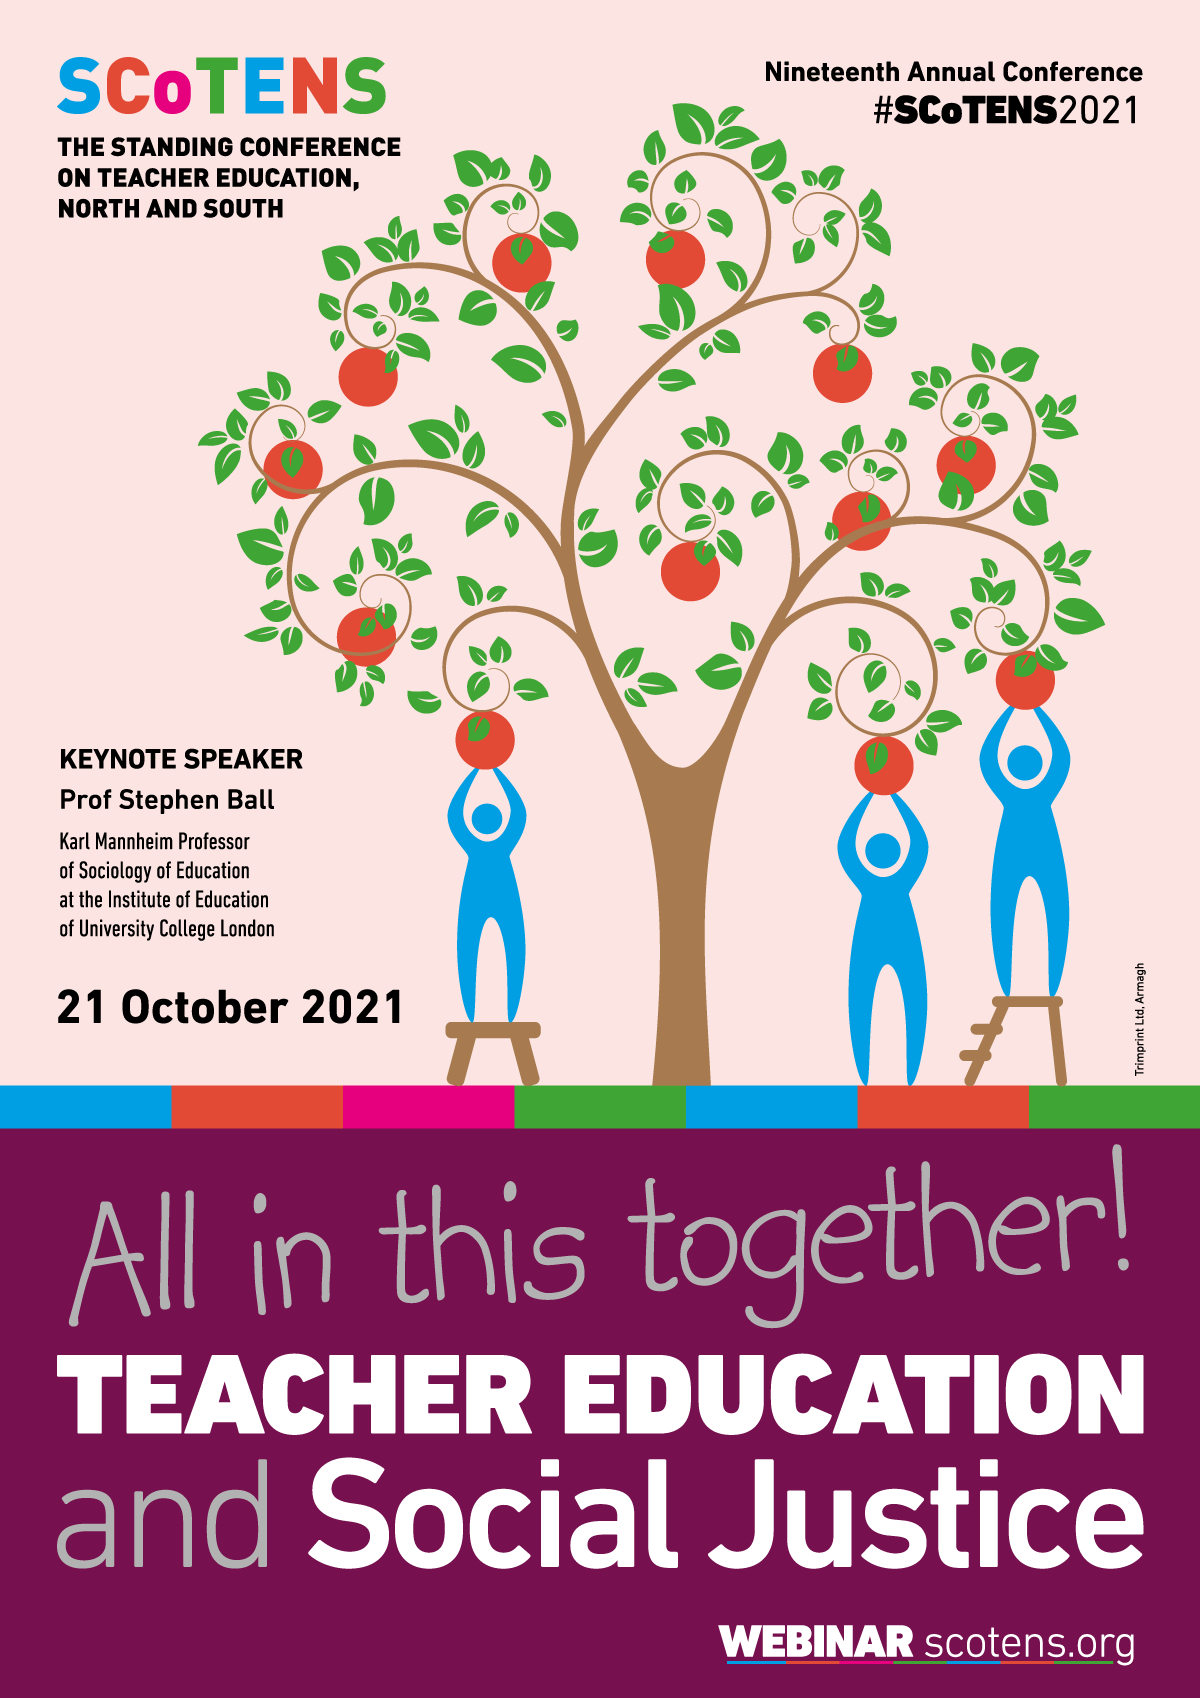 All in this together! Teacher Education and Social Justice